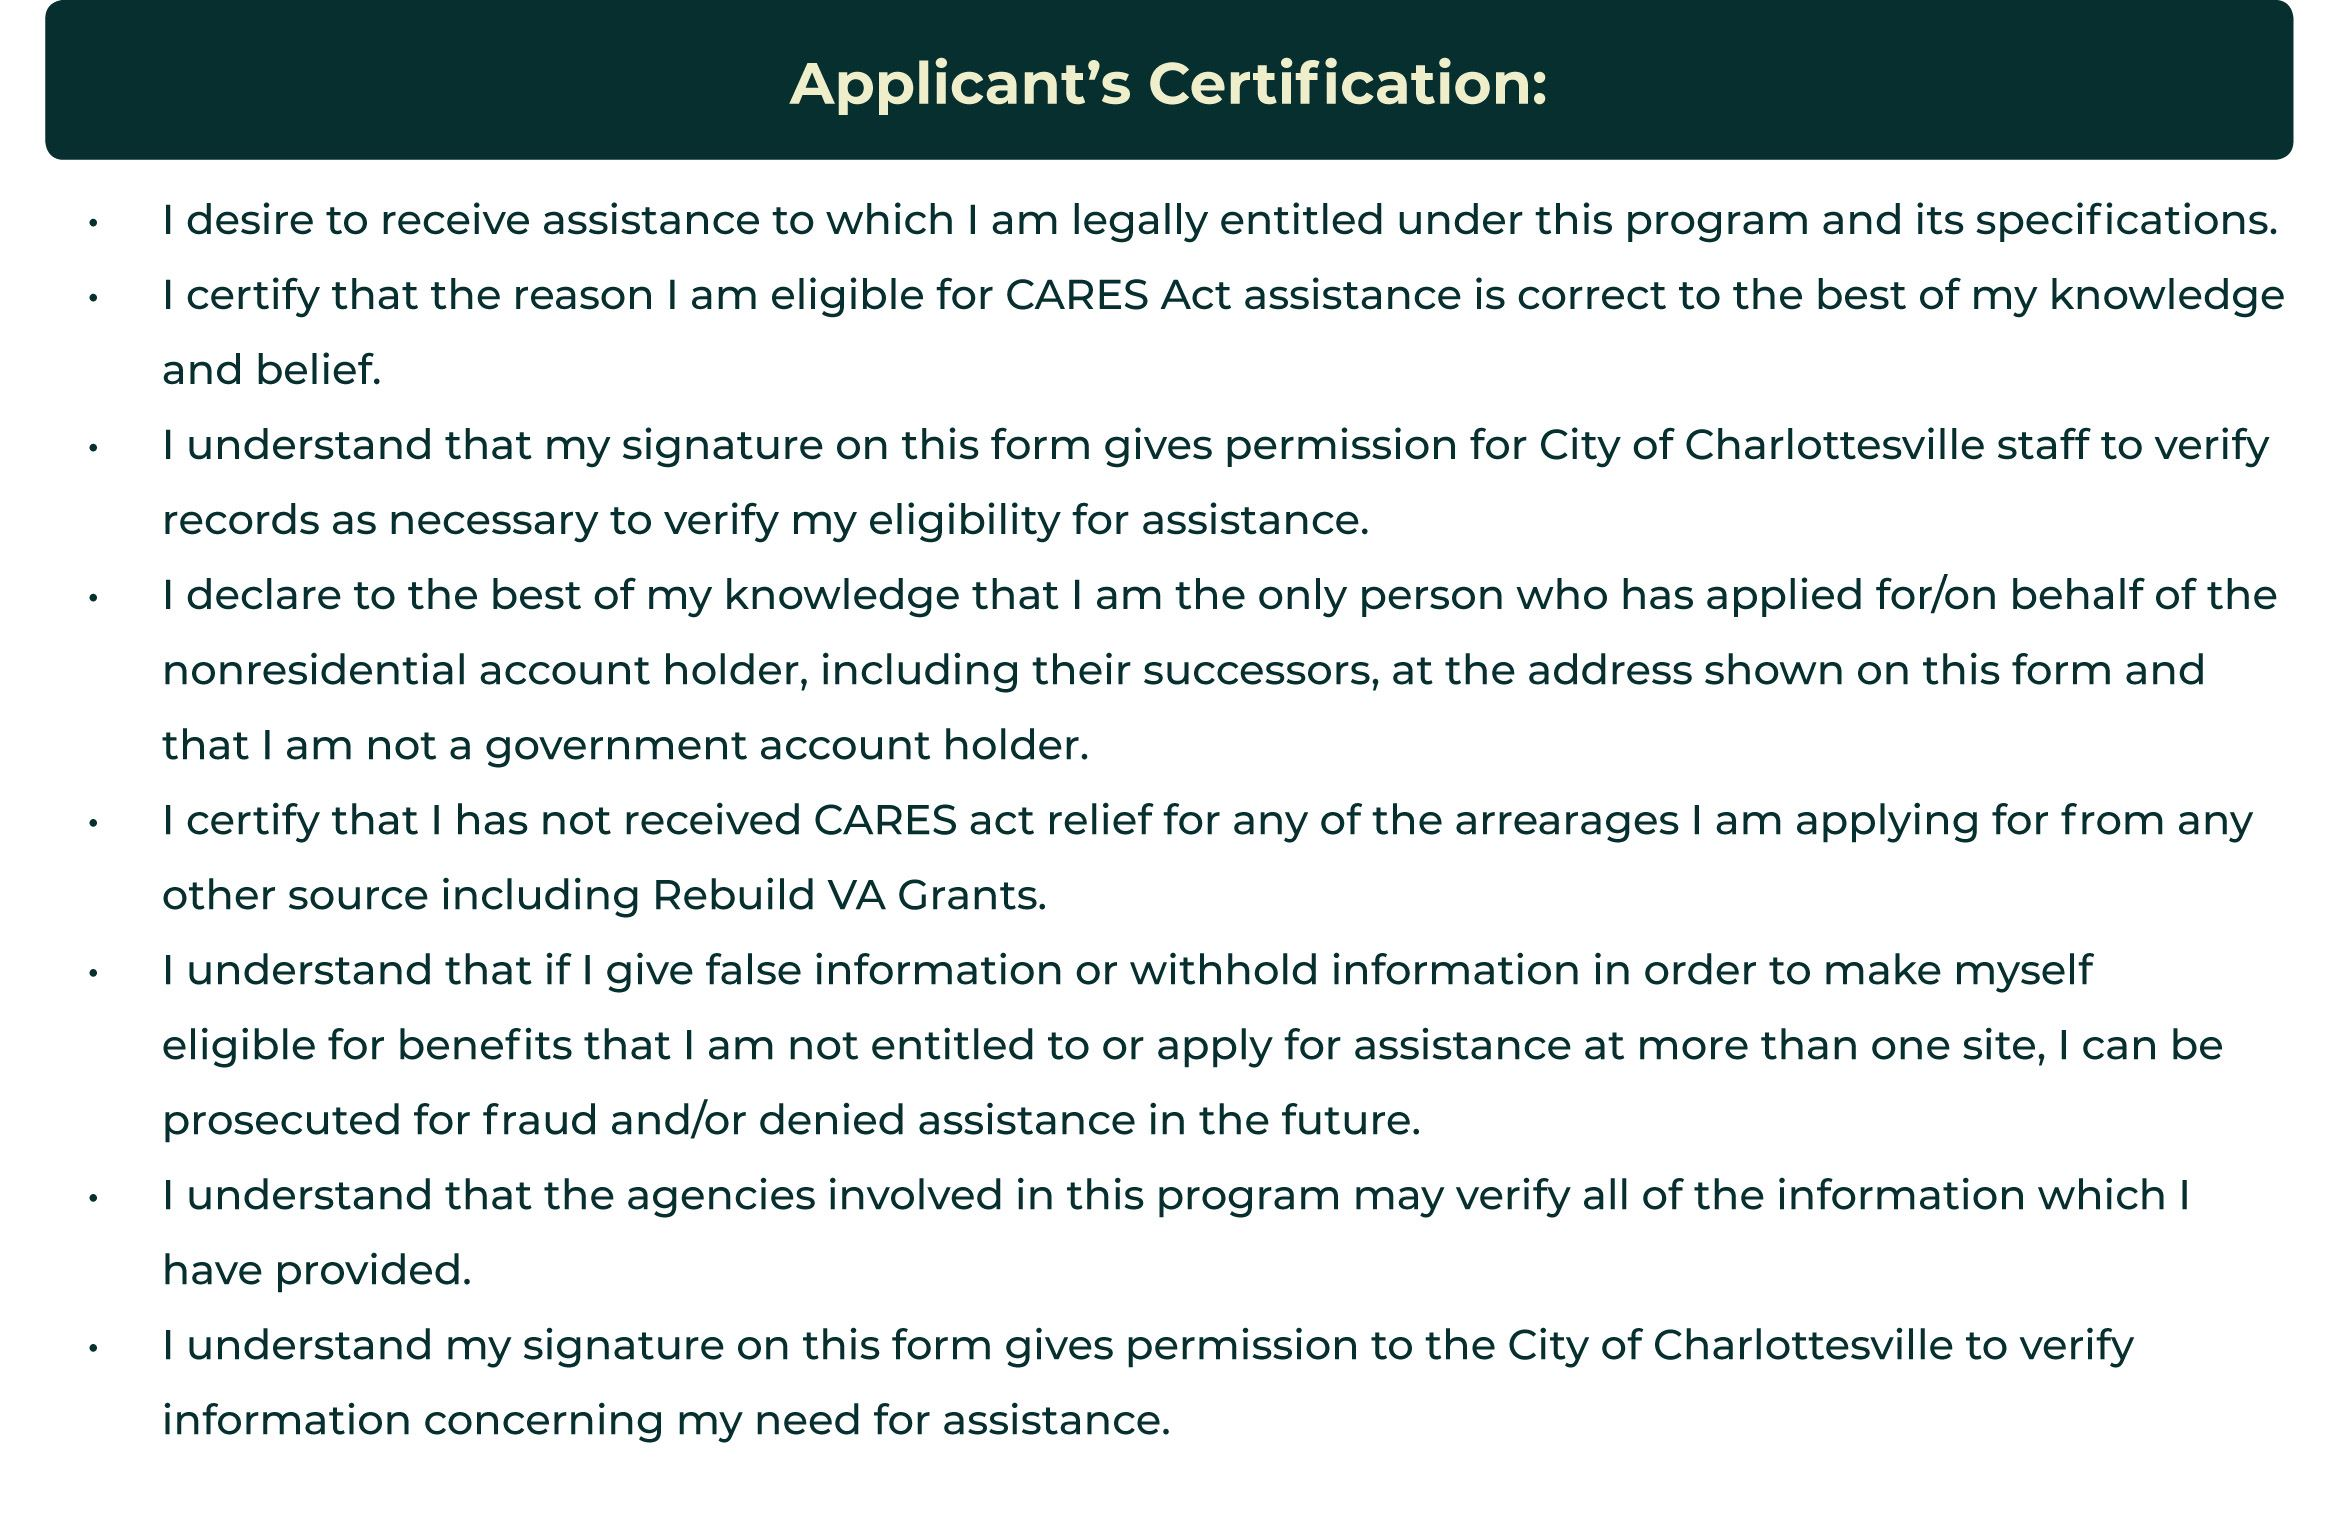 Applicant's Certification of eligibility that the customer meets the requirement for the program